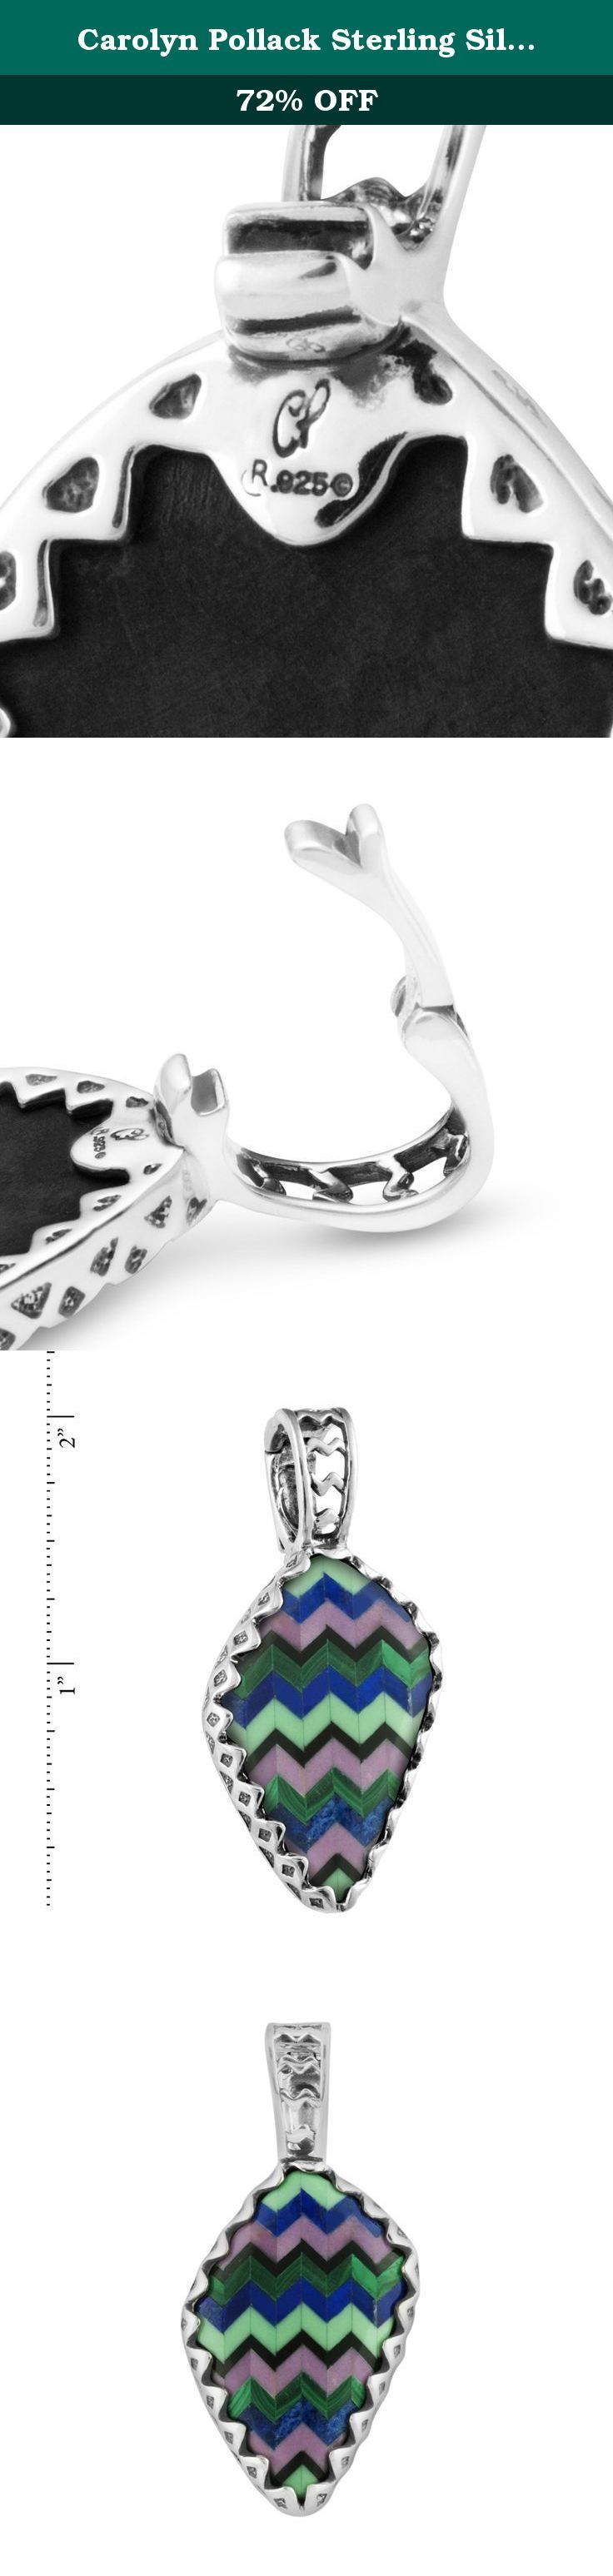 Carolyn Pollack Sterling Silver Multi Gemstone Inlay Zig Zag Pendant Enhancer. In fashionable flair, waves of sterling silver surround zigzagging pops of color in this impressive enhancer. A channel inlay in cool colors of variscite, malachite, lapis, phosphosiderite, and jet make this enhancer unique and allow it to go with an abundance of looks and colors. Measures 2 inches L x 7/8 inch W with snap hinge bail. *Note: Color may vary due to characteristics of the natural stone. Our…